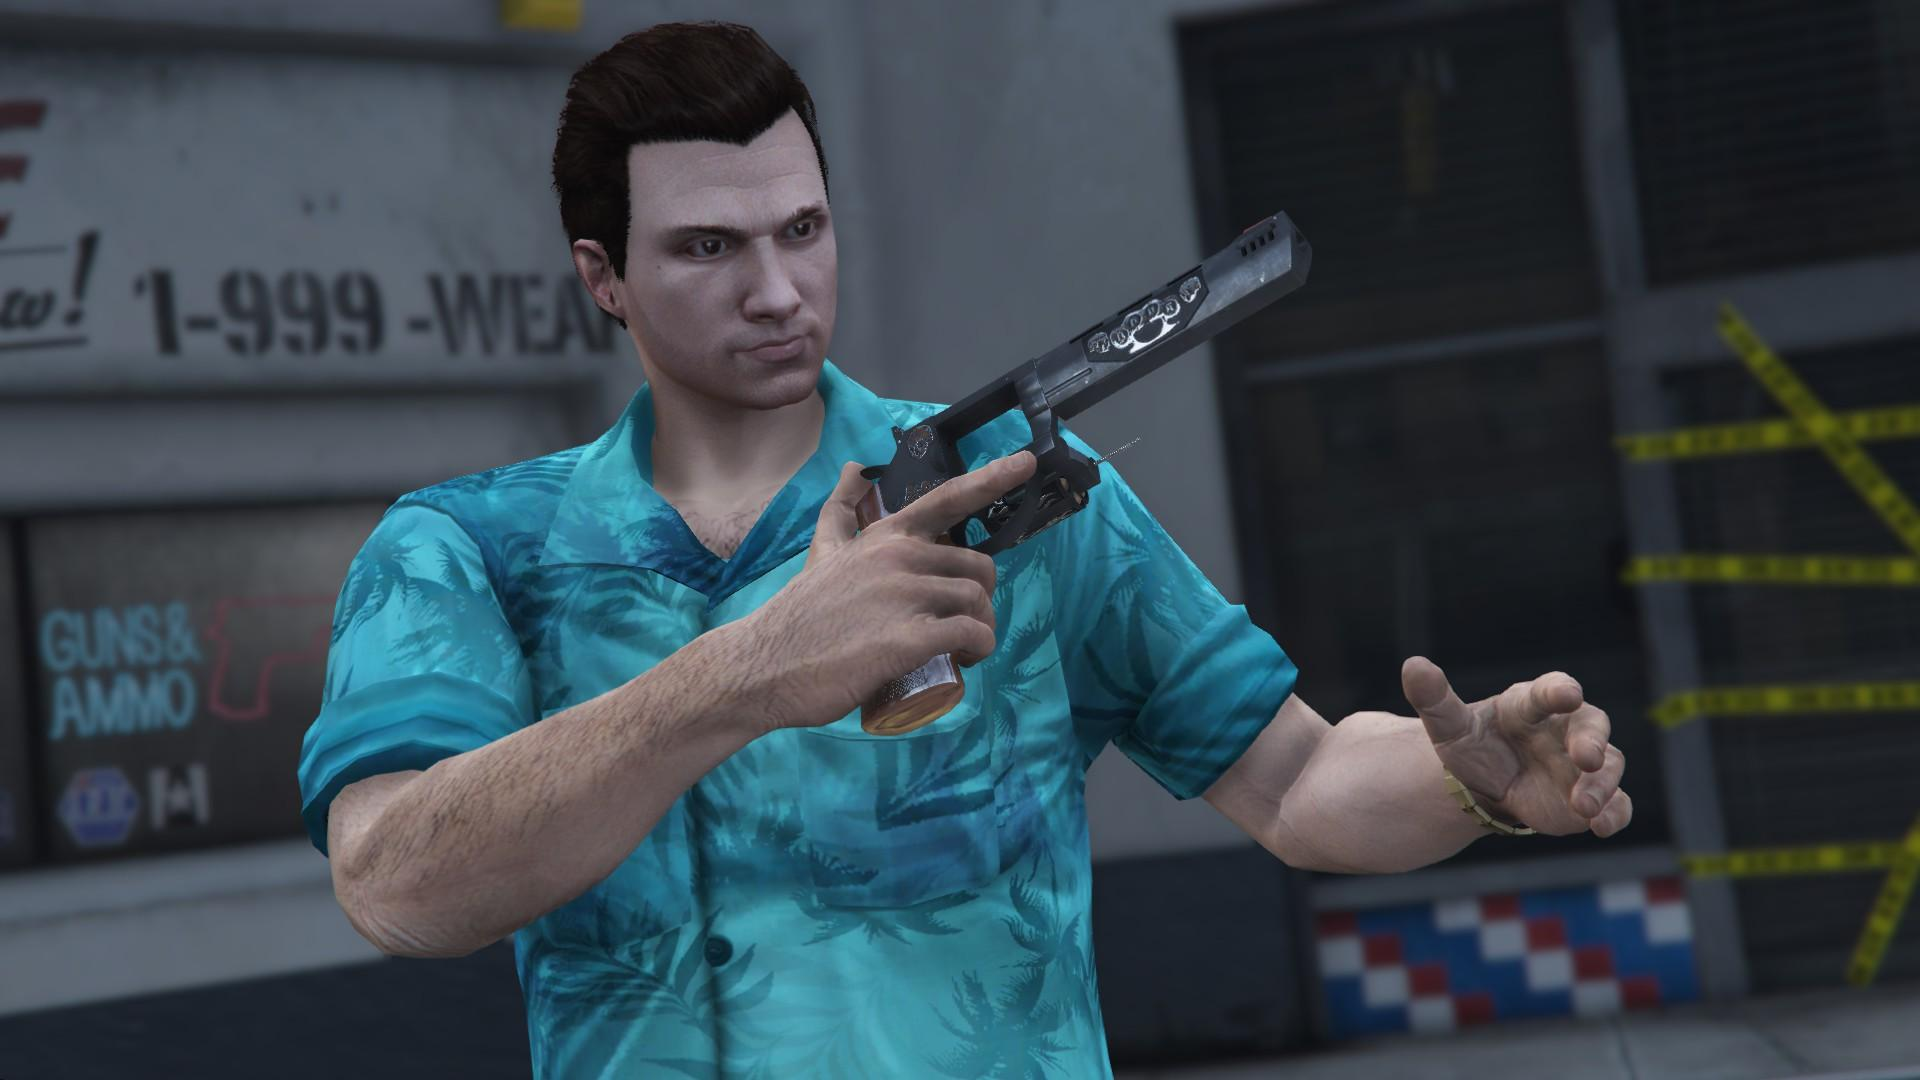 tommy vercetti shirt texture for mp gta5